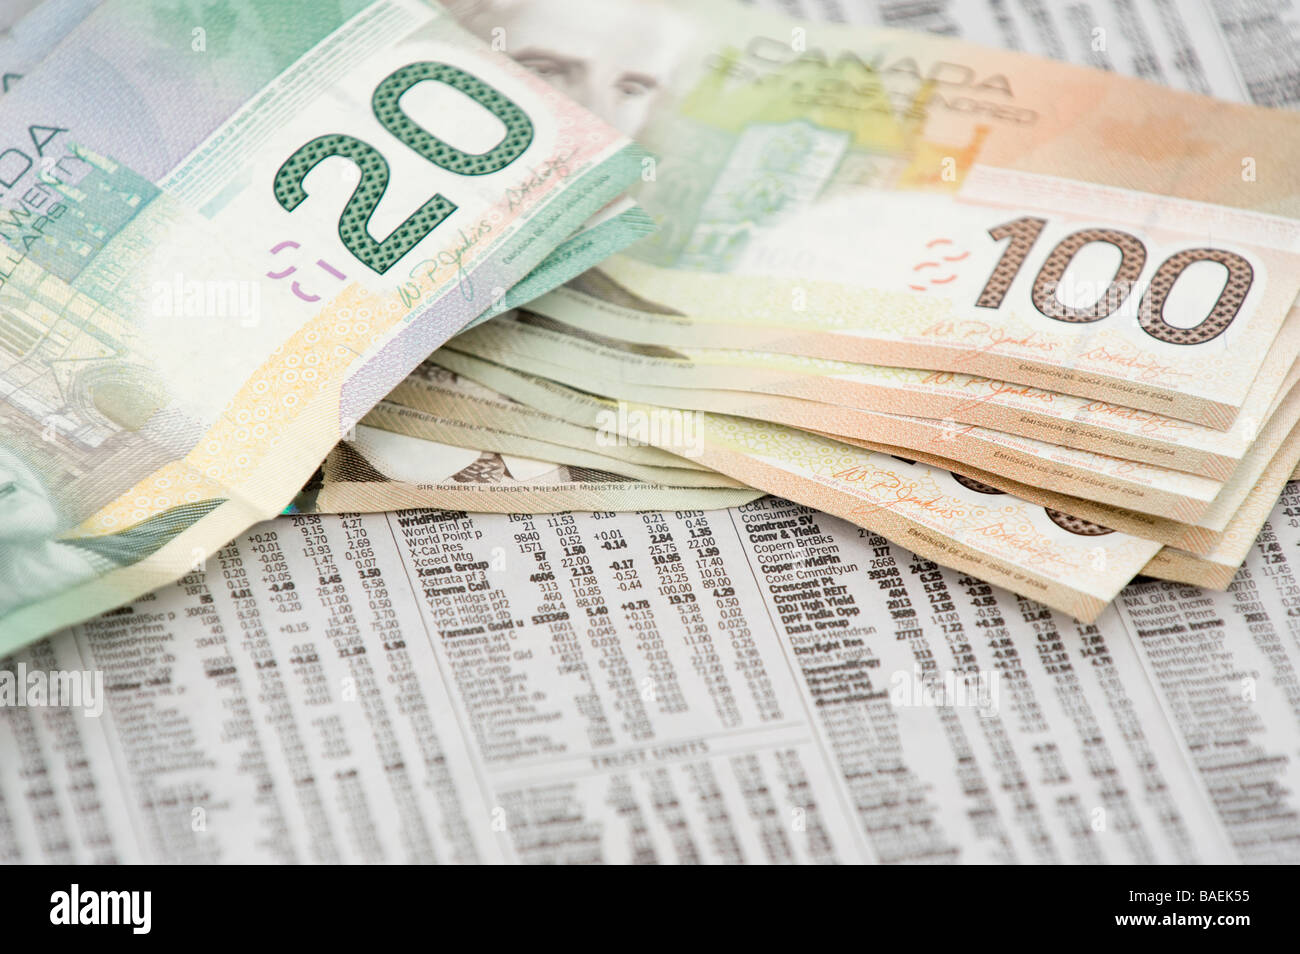 Canadian Newspaper Stock Photos & Canadian Newspaper Stock Images ...